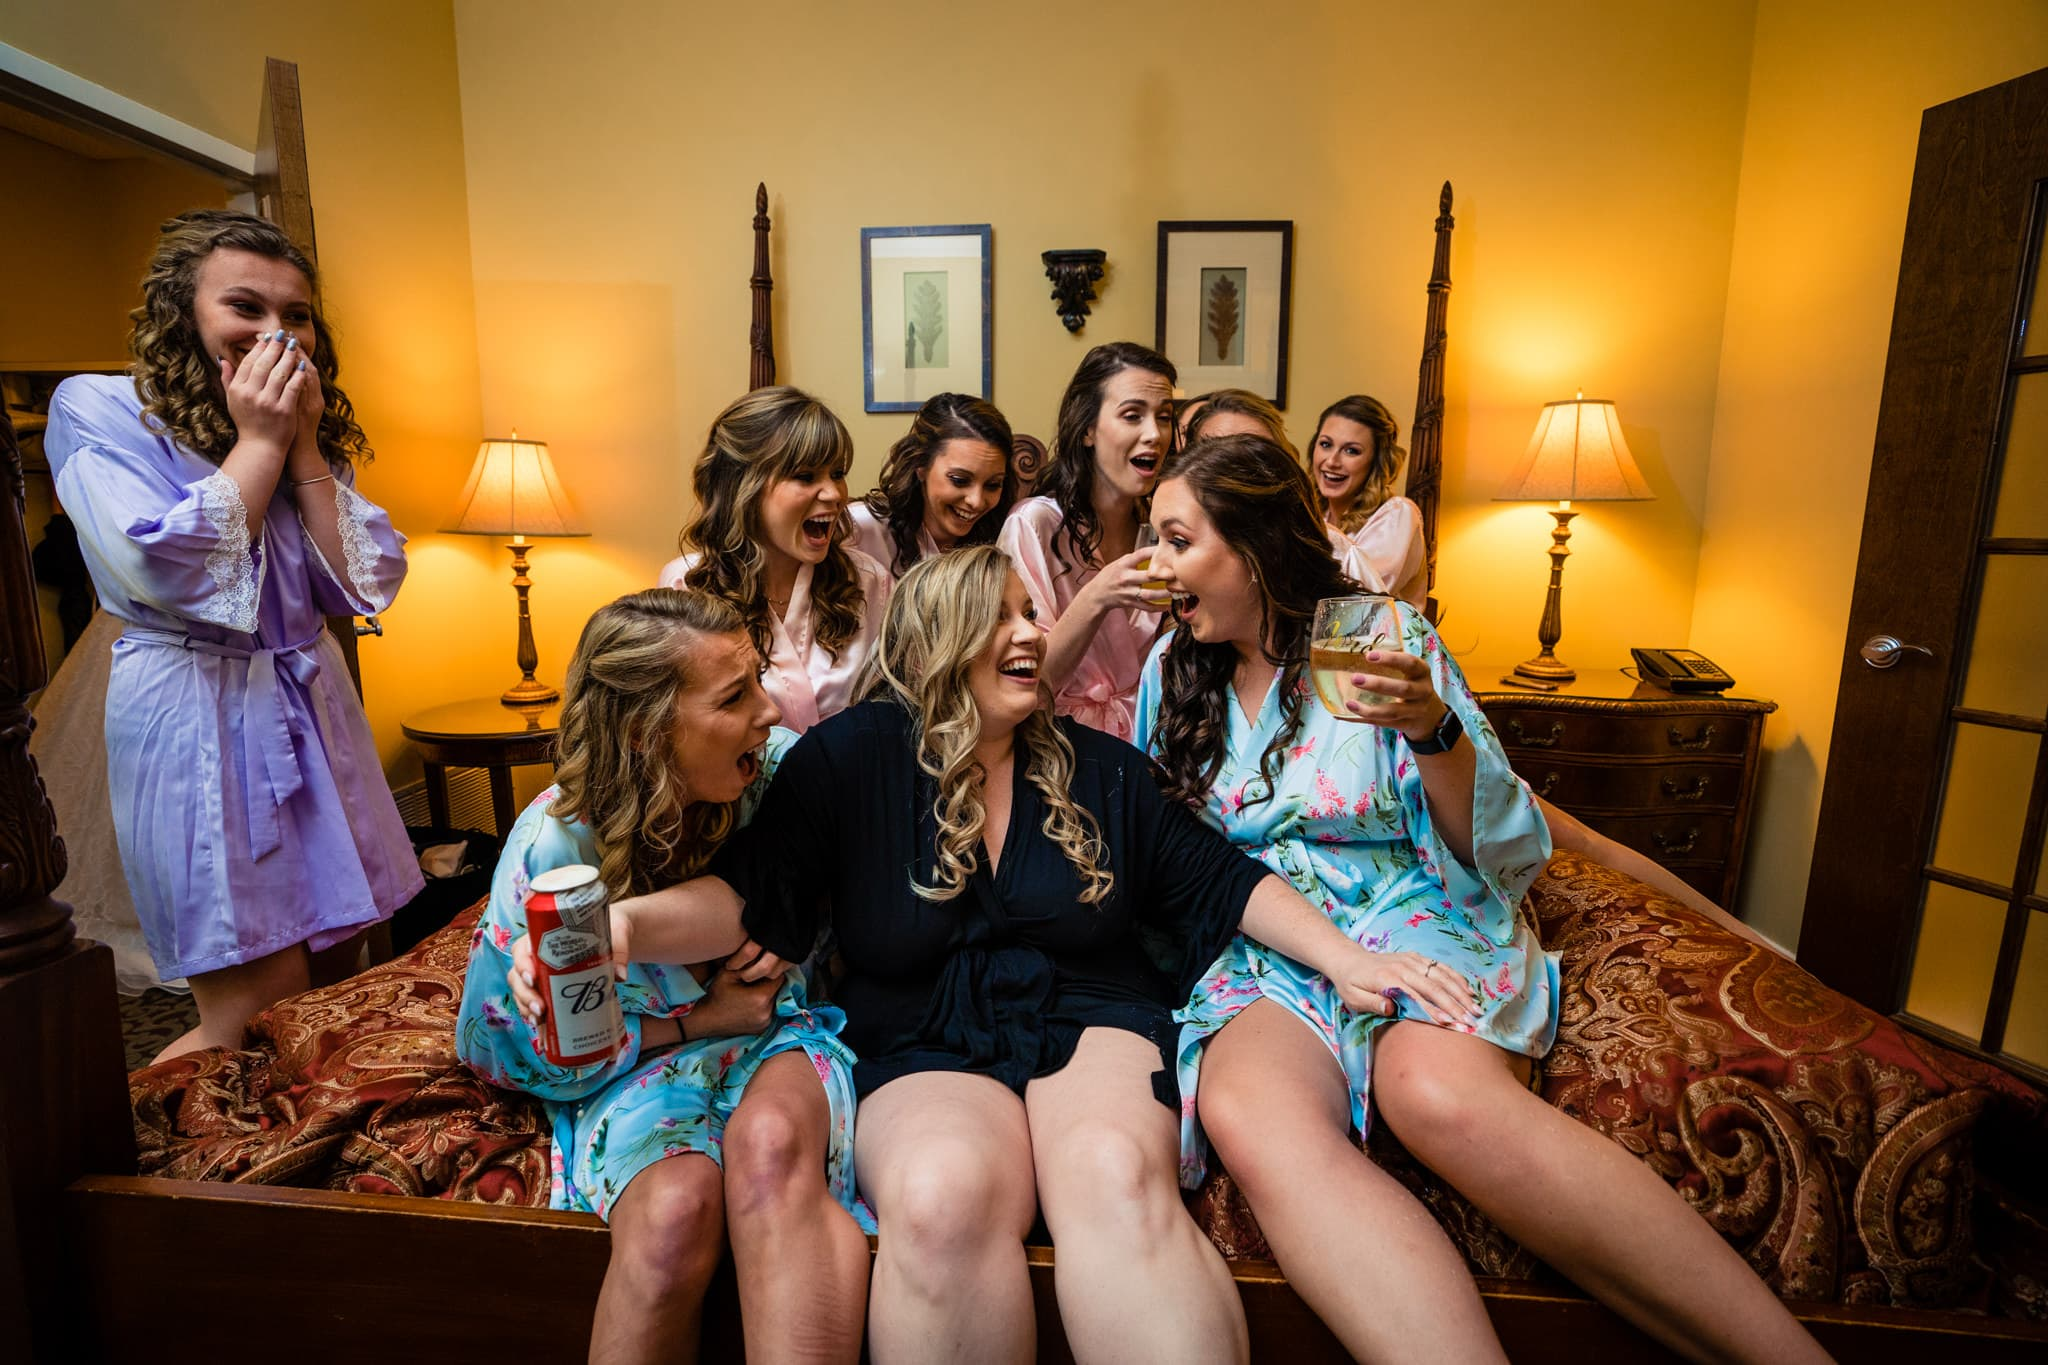 Funny Wedding Photos of Bridesmaids